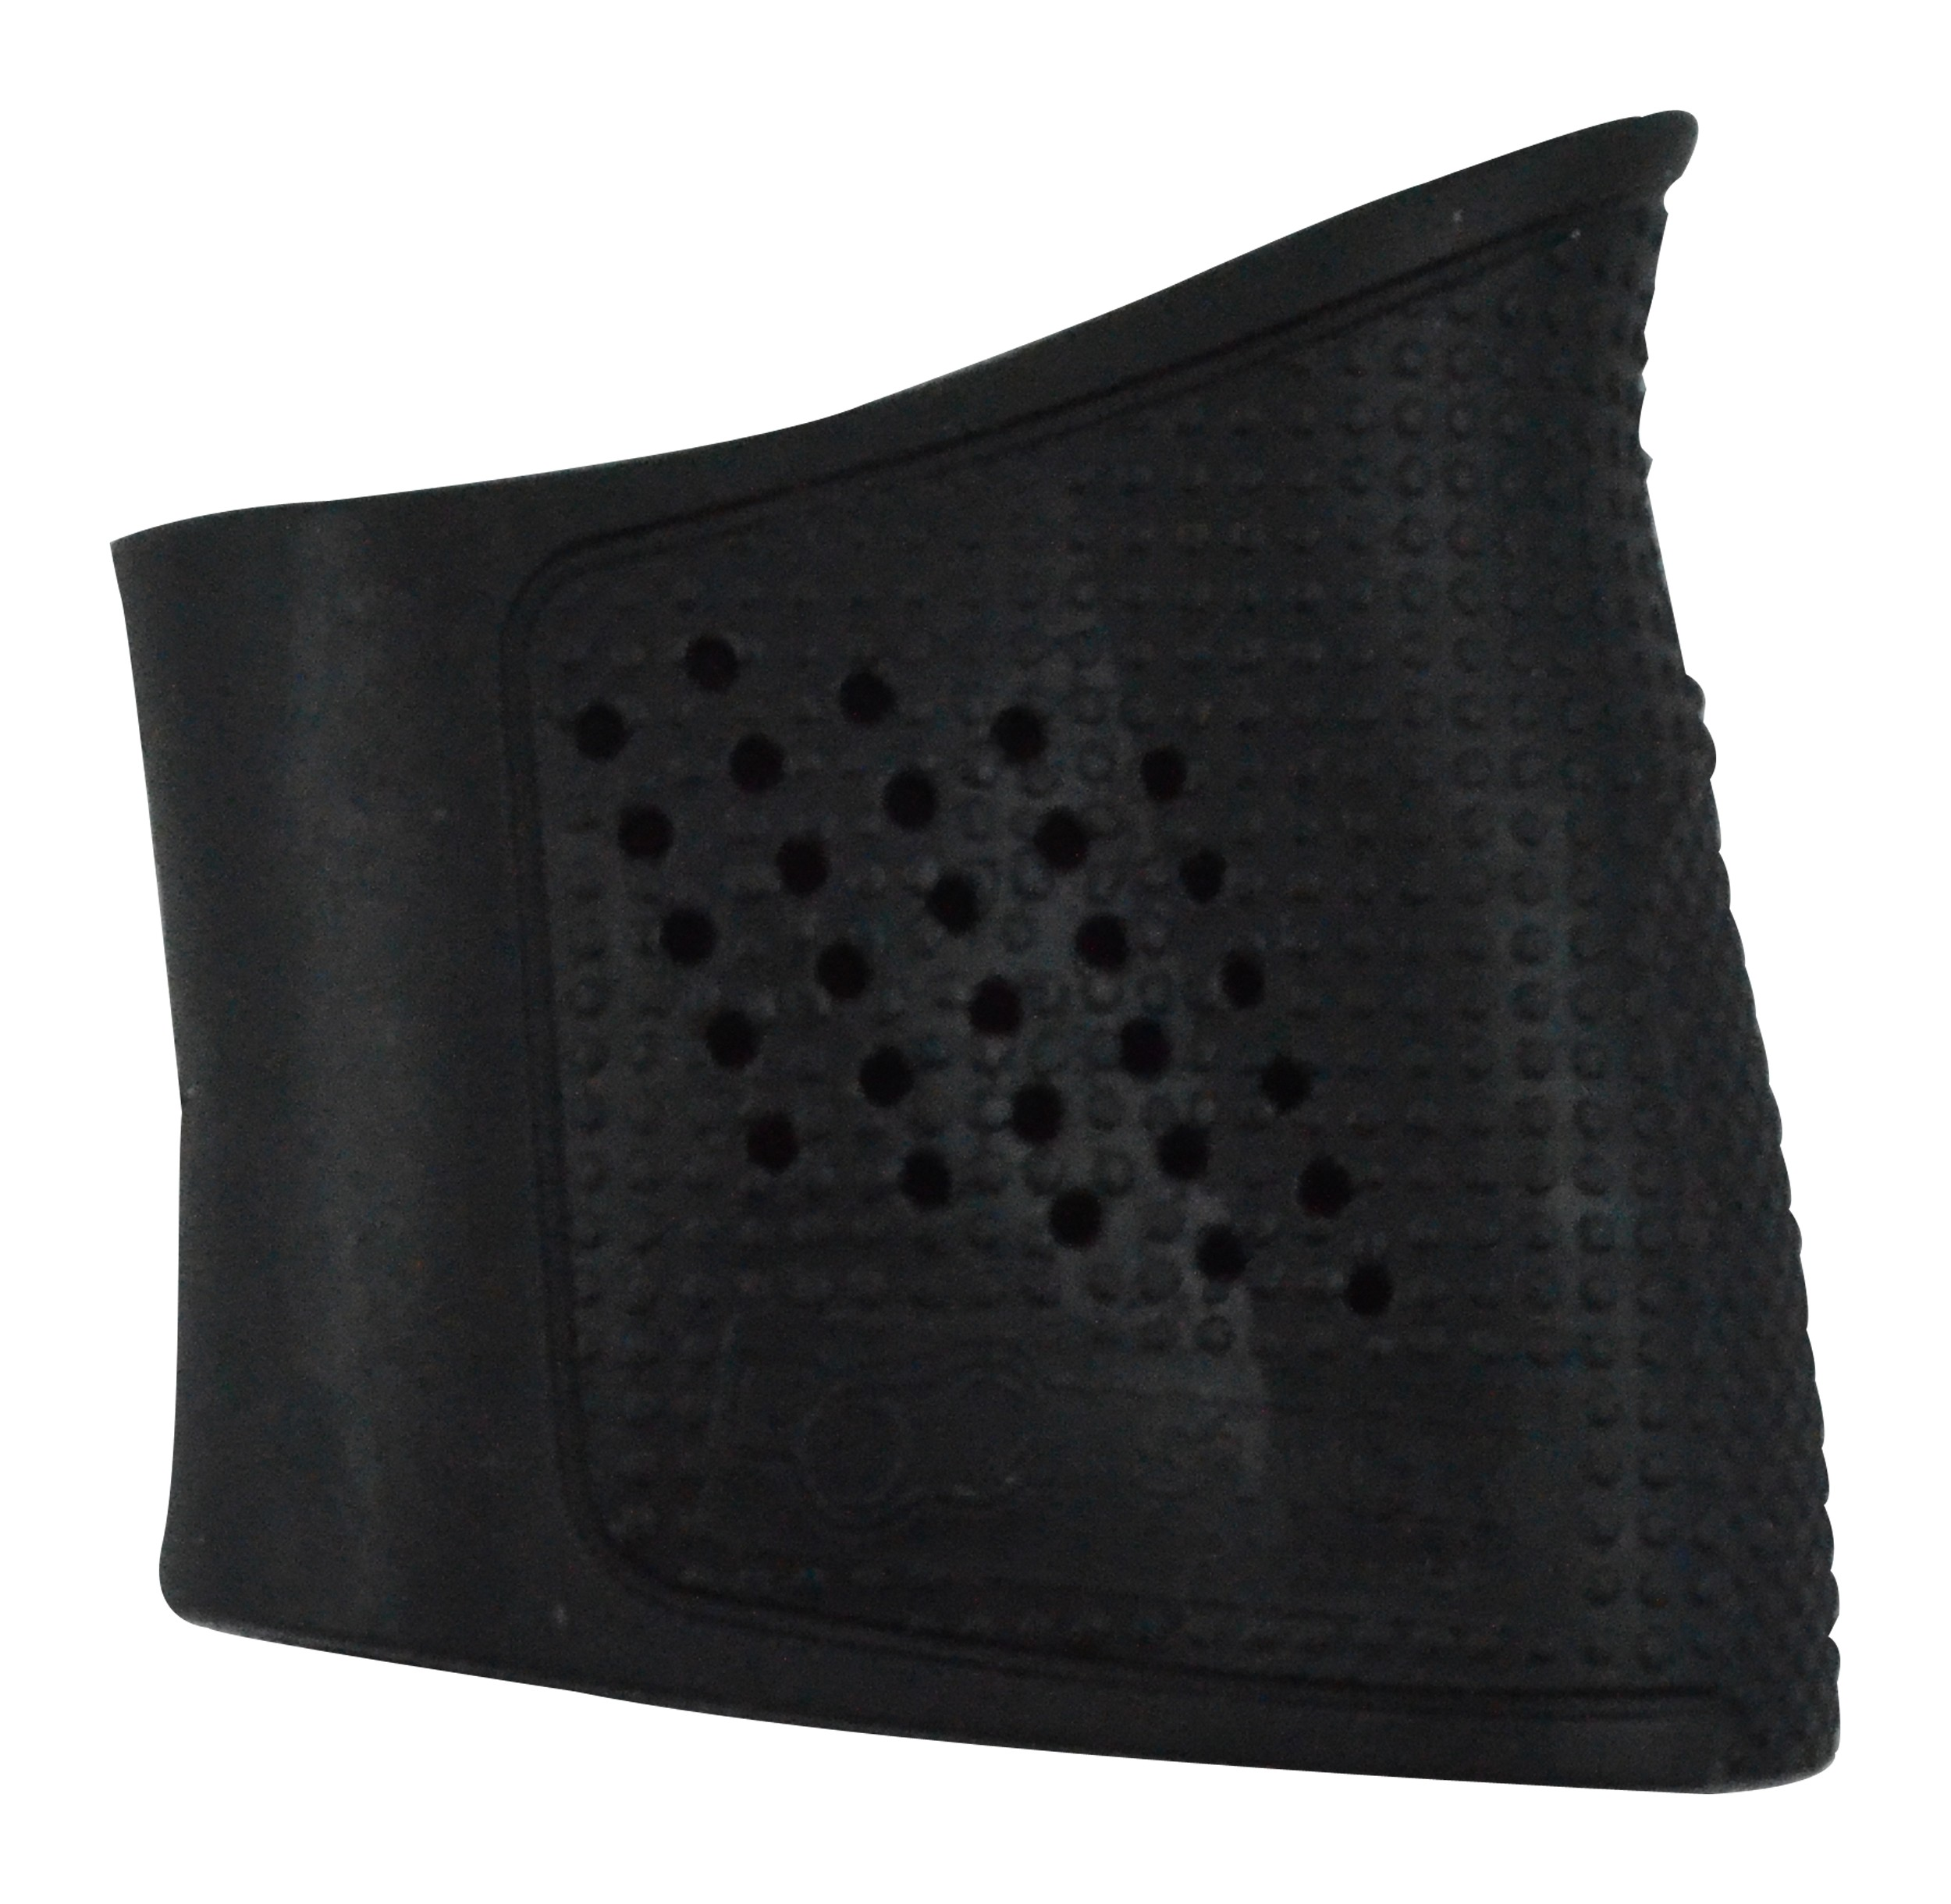 Tactical Grip Glove Sleeve Fits: Ruger LCP, Taurus TCP, Kel-Tec P-3AT & P32, Beretta Nano, Black